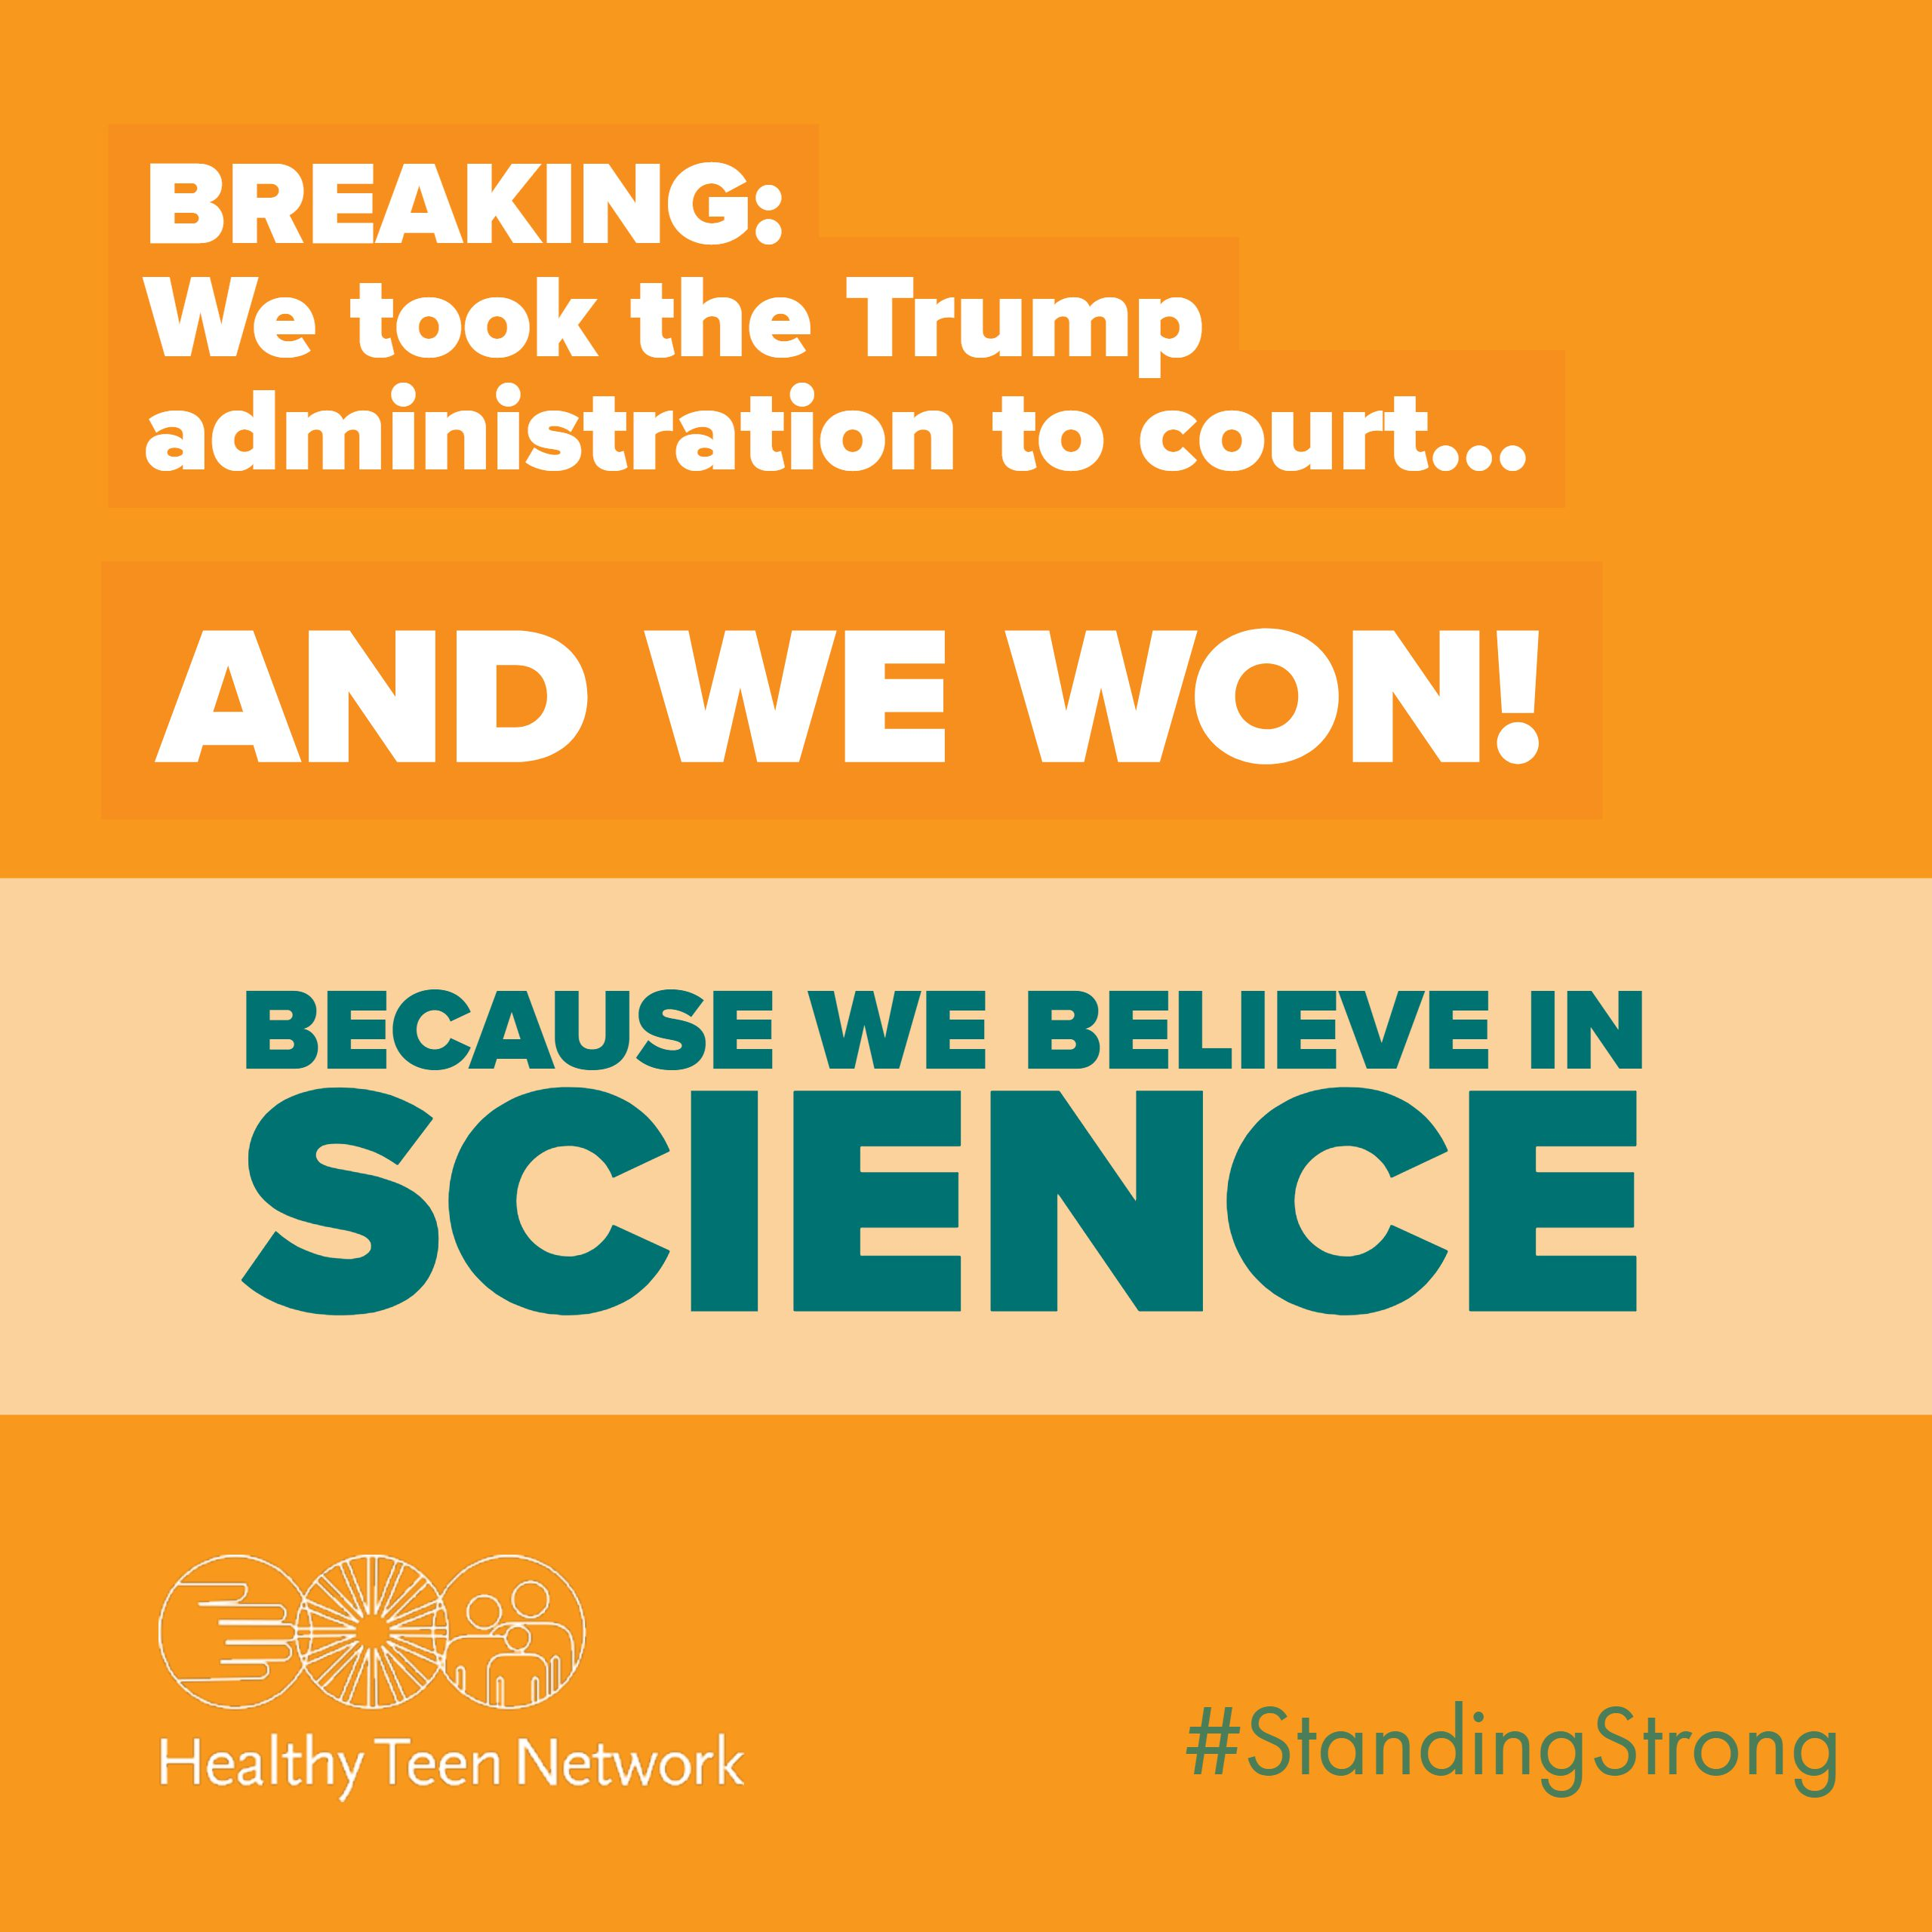 """Image of word art: """"Breaking: We took the Trump administration to court...and we won! Becaues we believe in Science. #standingstrong""""and Healthy Teen Network logo"""